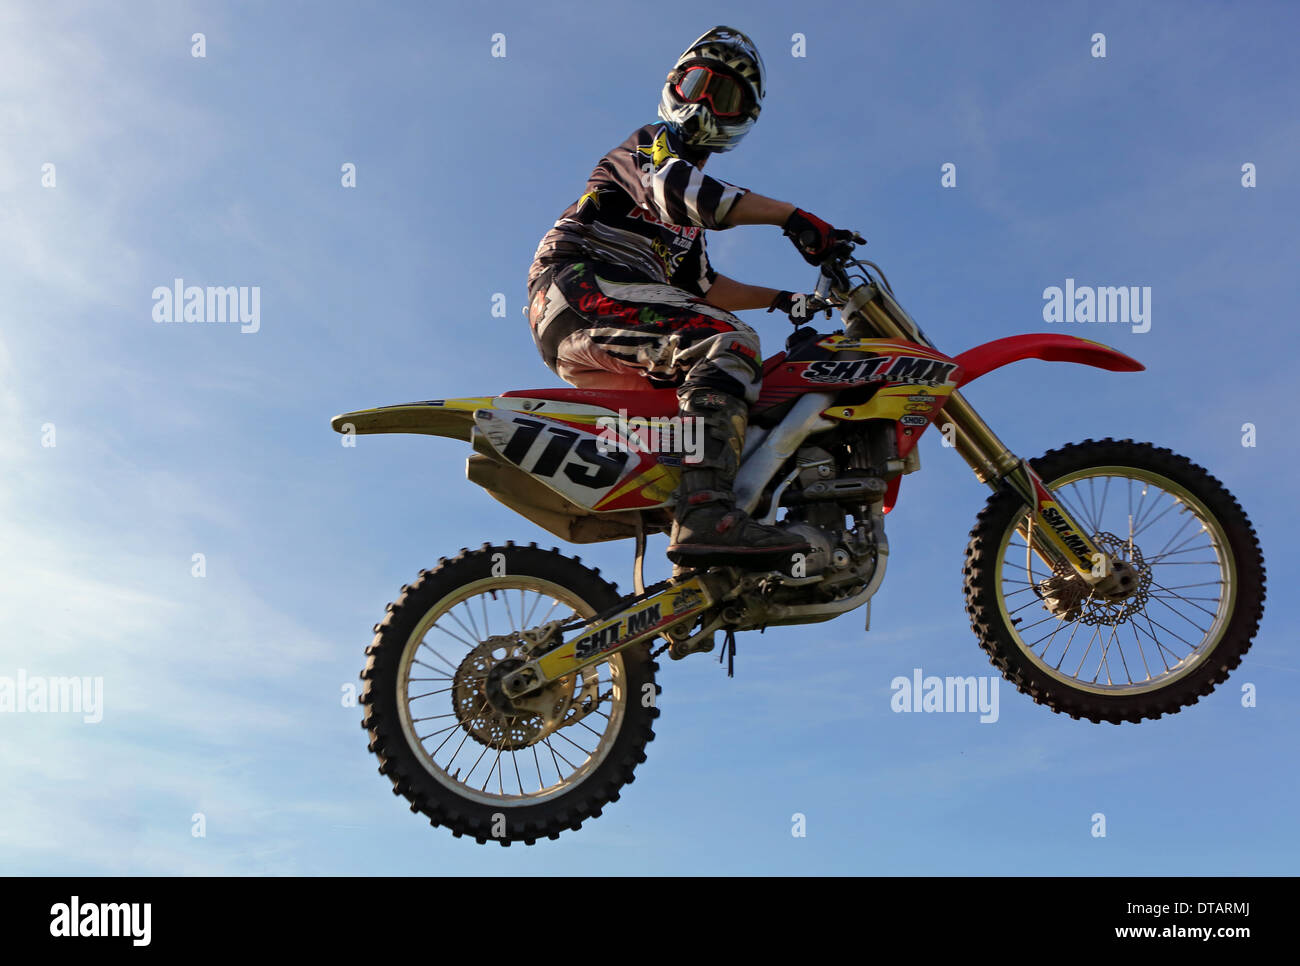 Hannover, Germany, motocross rider flies through the air - Stock Image